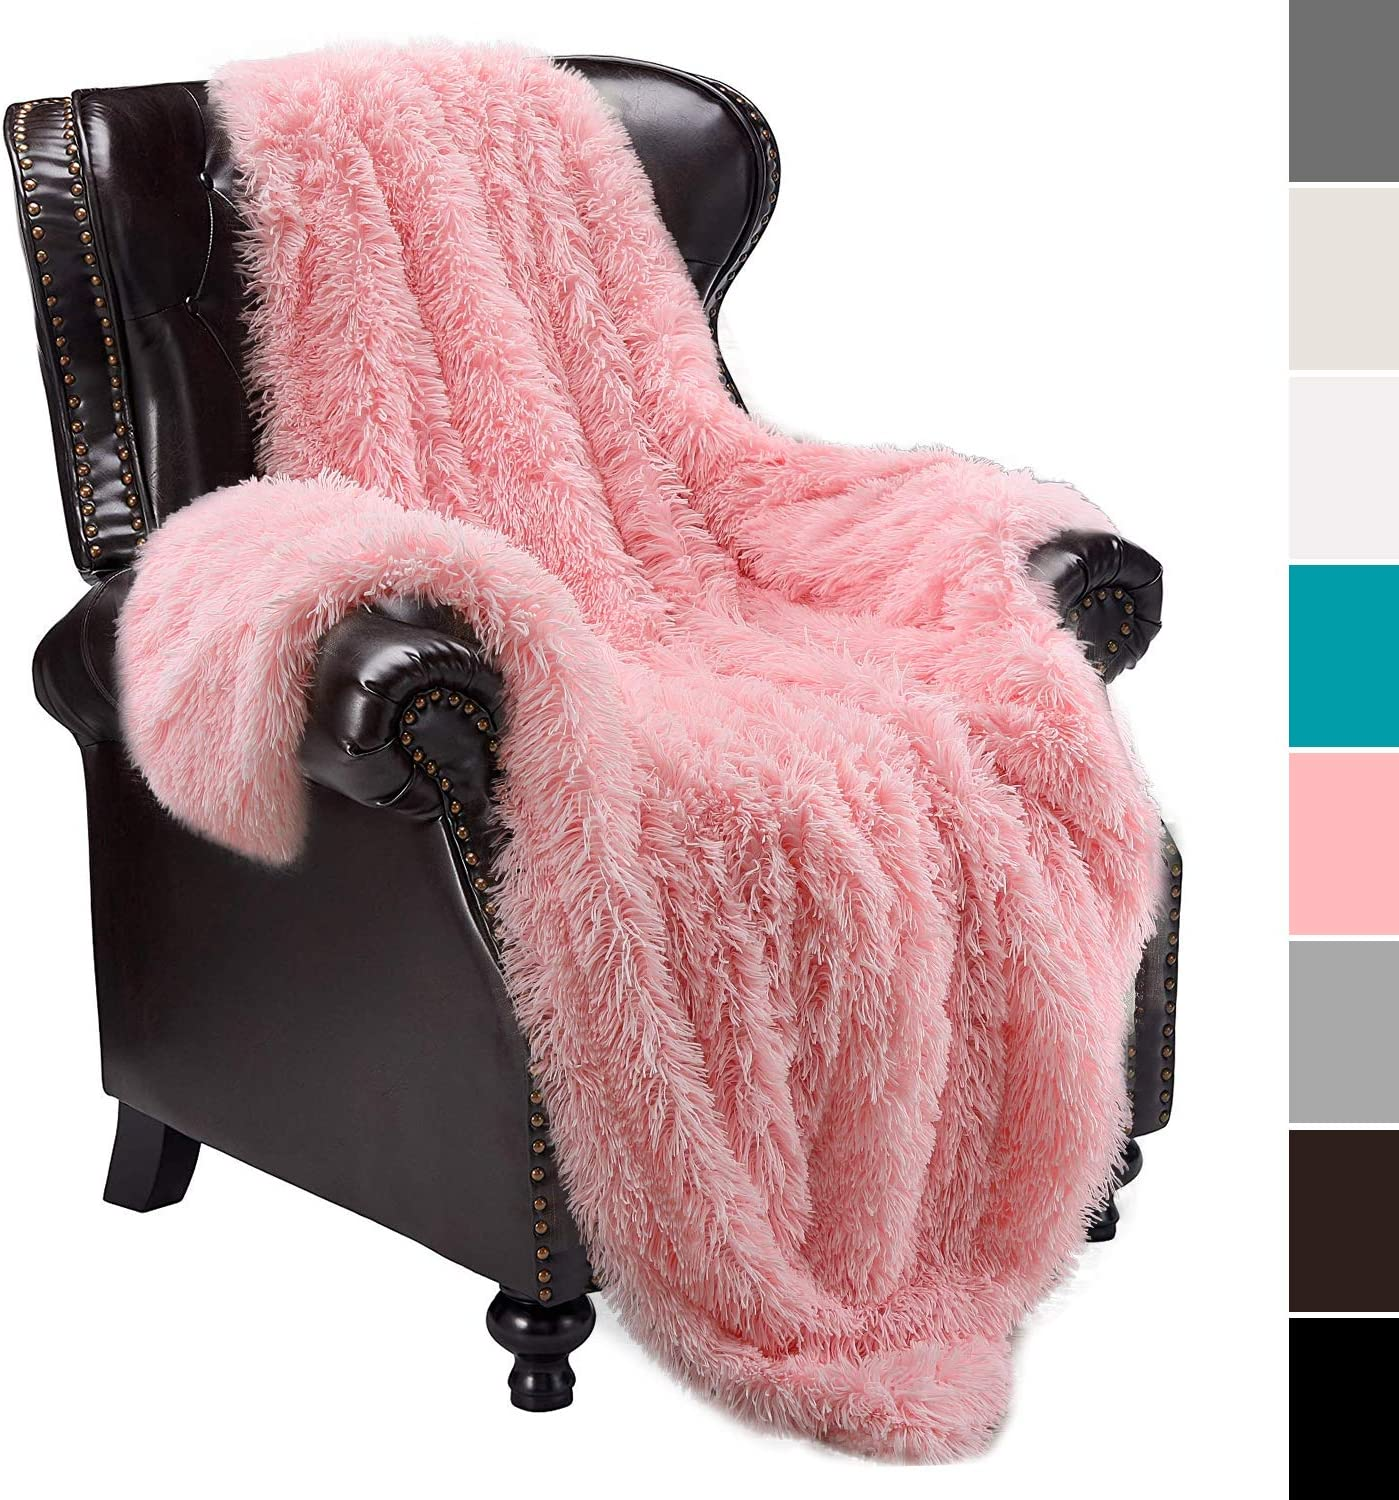 "junovo Super Soft Shaggy Longfur Faux Fur Blanket, Fuzzy Throw Blanket for Bed, Fluffy Cozy Plush Light Blanket, Washable Warm Furry Throw Blanket for Couch Sofa Chair Home Decor, 50""x60"" Pink"